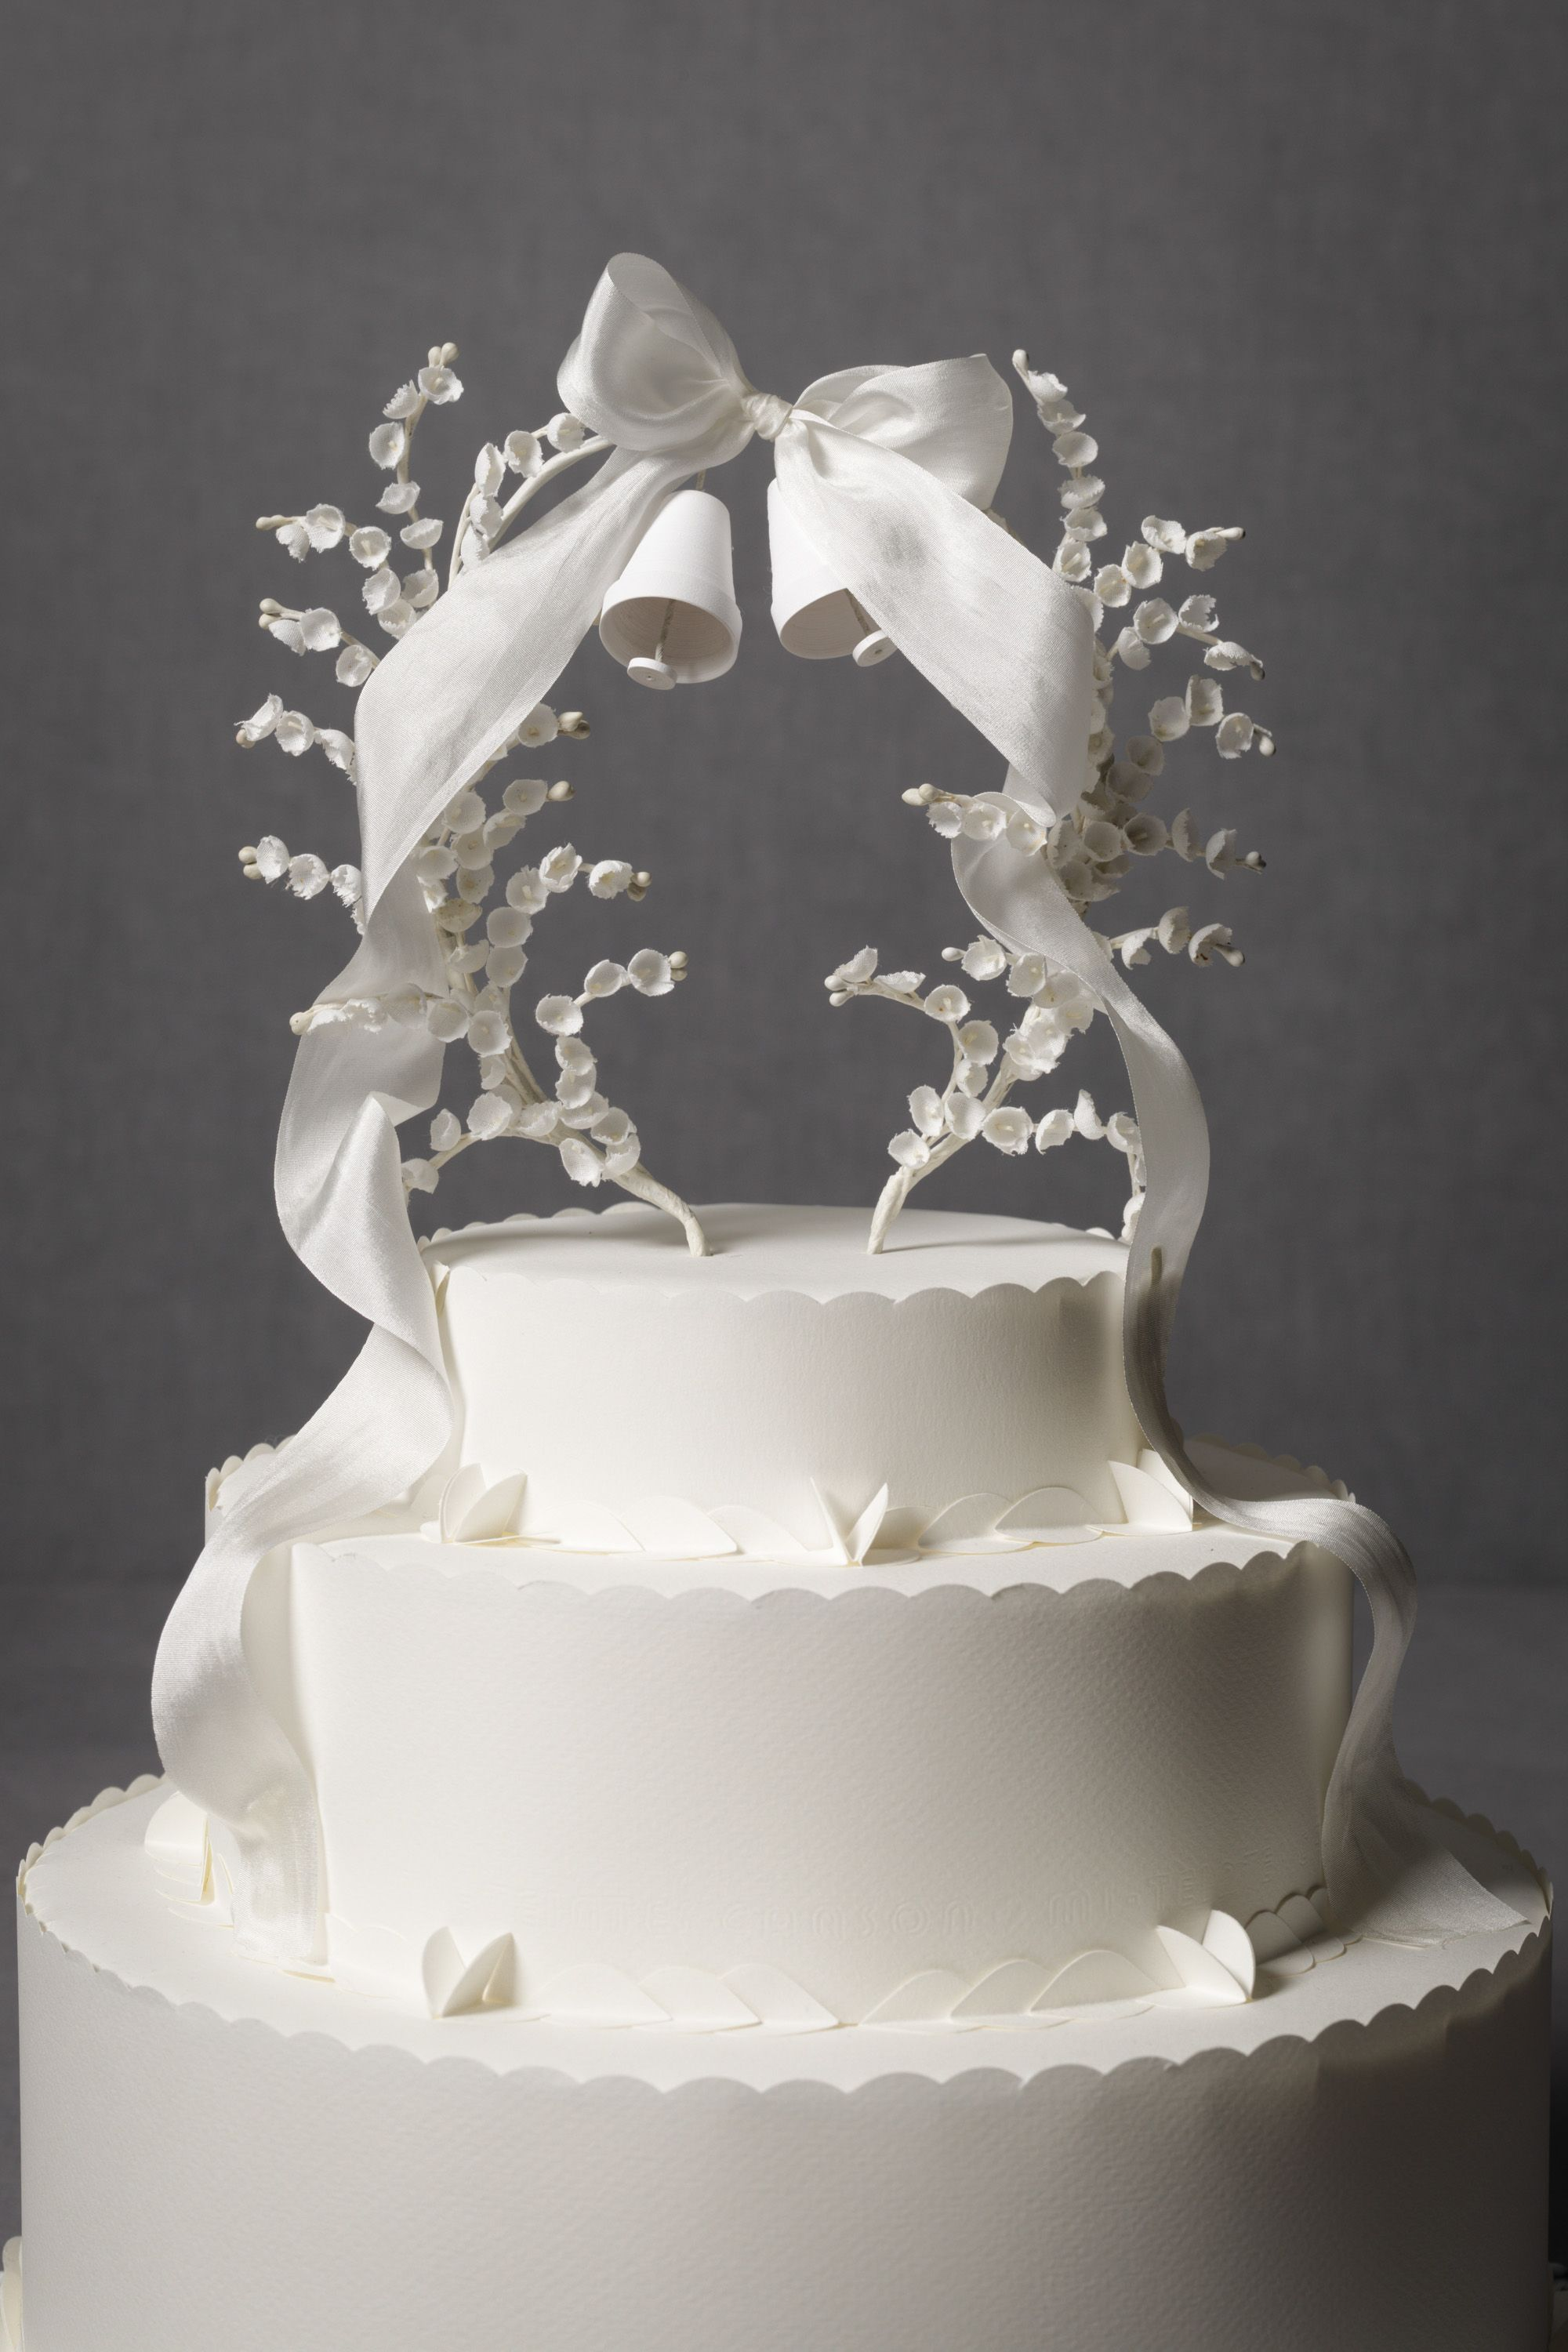 An extremely overpriced cake topper from BHLDN.